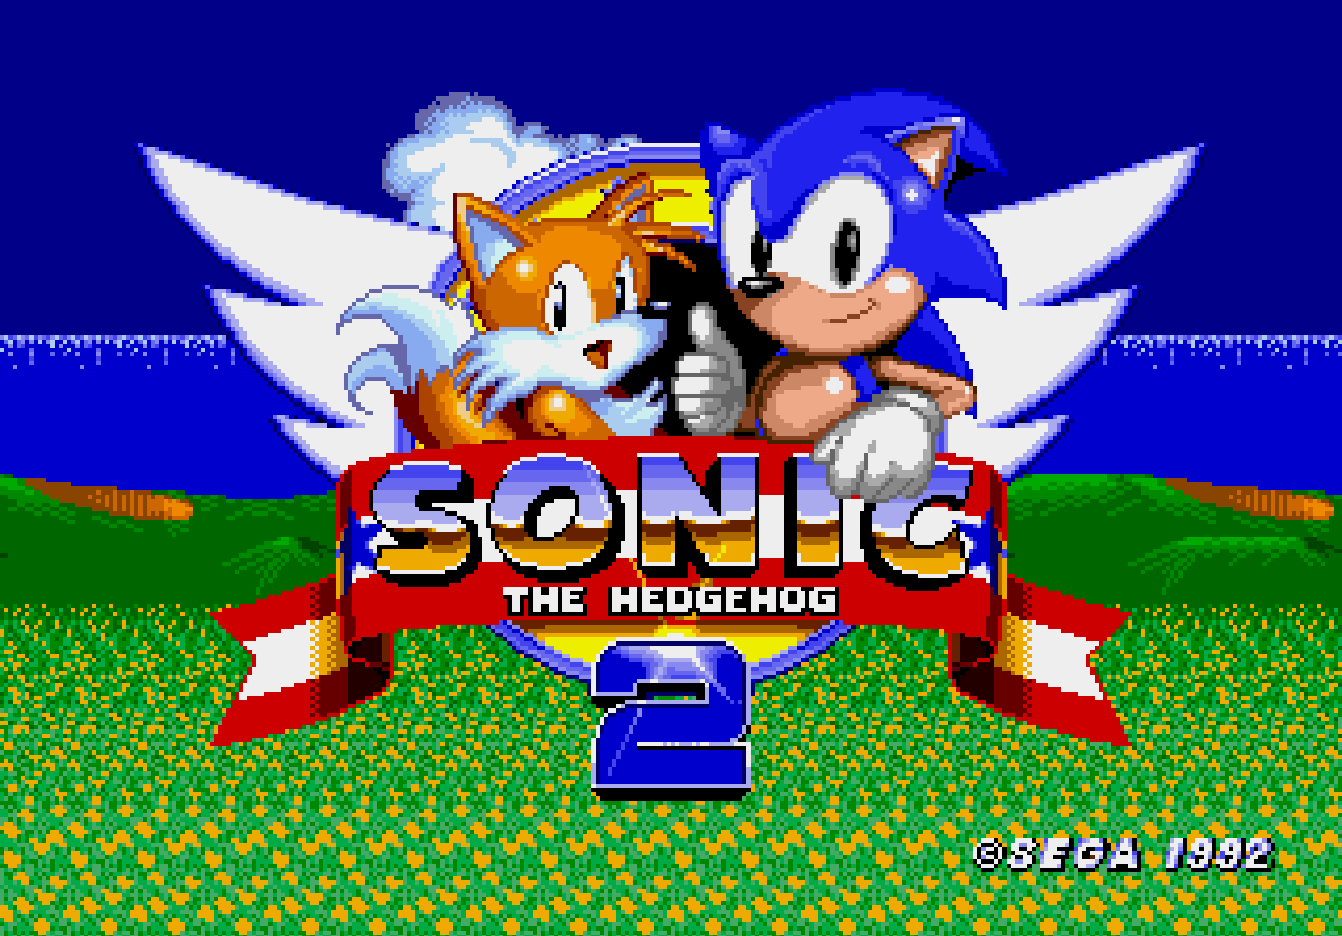 Sonic the Hedgehog 2 (прототип Саймона Вэя)